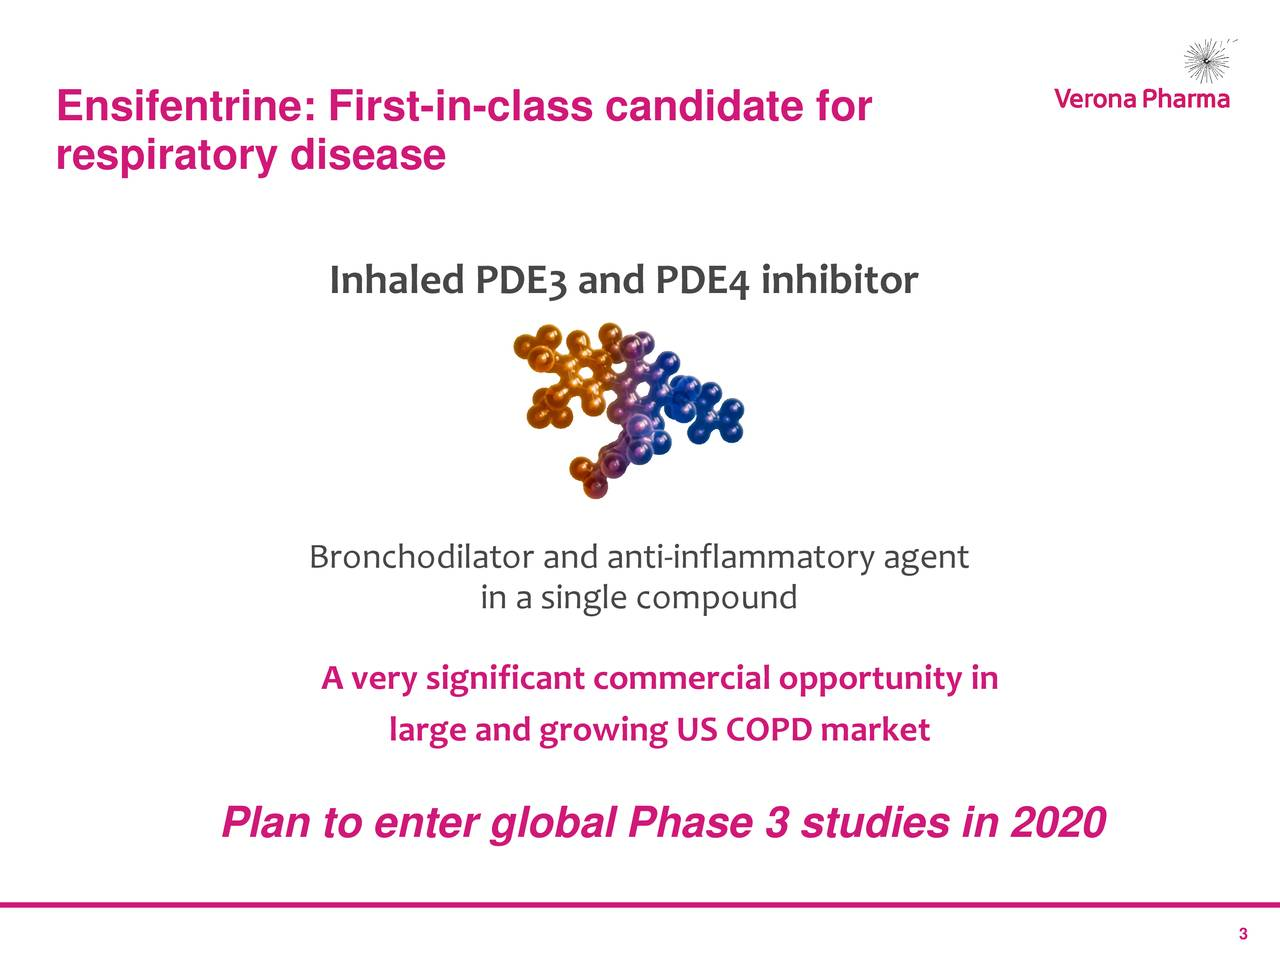 respiratory disease Inhaled PDE3 and PDE4 inhibitor Bronchodilator and anti-inflammatory agent in a single compound A very significant commercial opportunity in large and growing US COPD market Plan to enter global Phase 3 studies in 2020 3